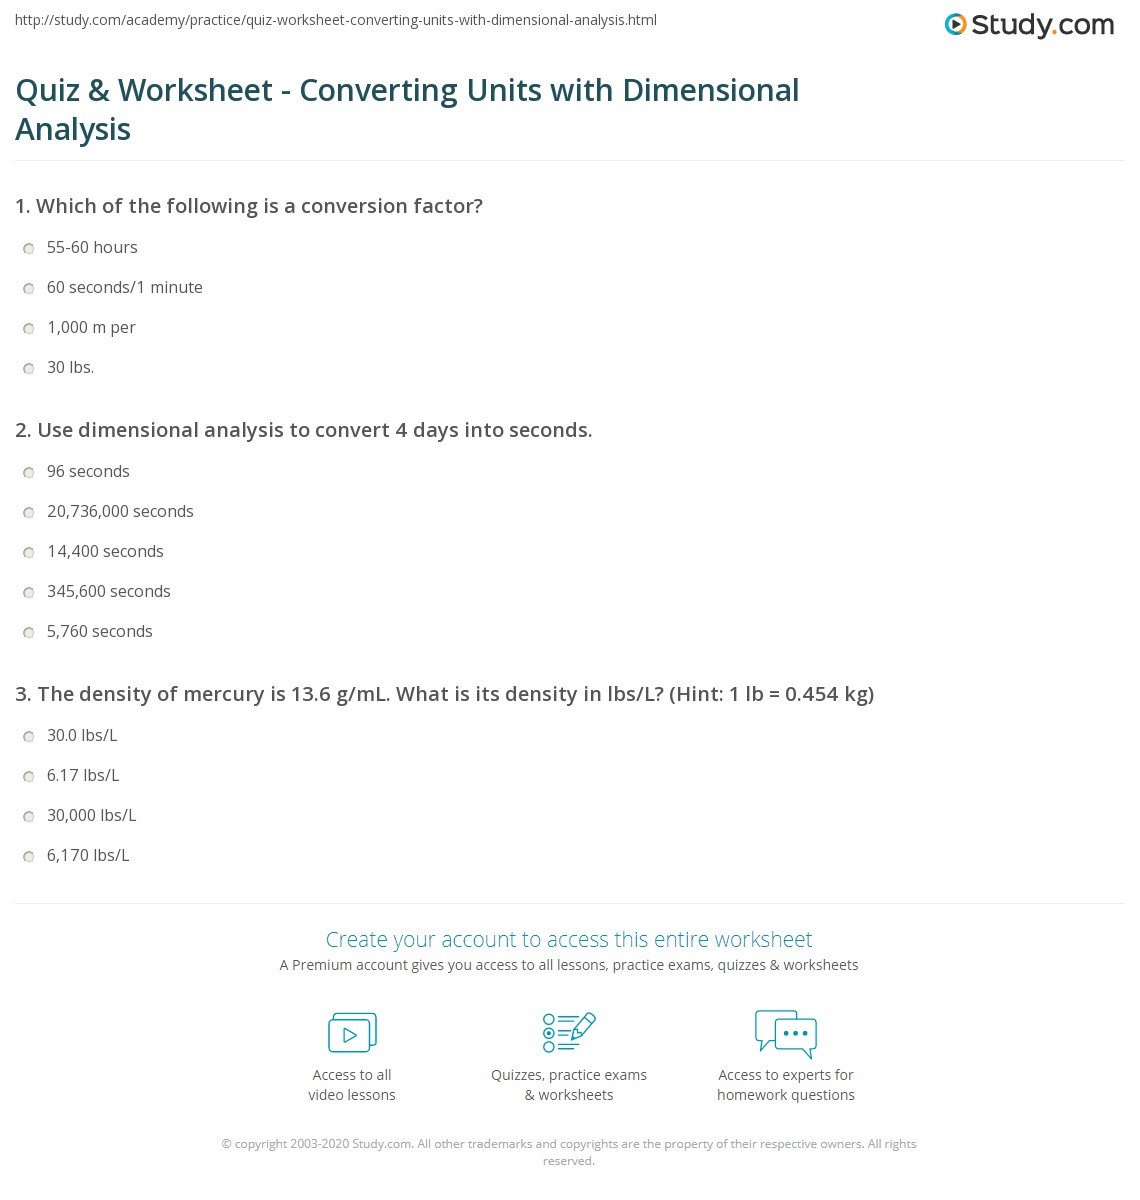 Printables Dimensional Analysis Worksheet For Nursing dimensional analysis physics worksheet pichaglobal quiz amp converting units with analysis